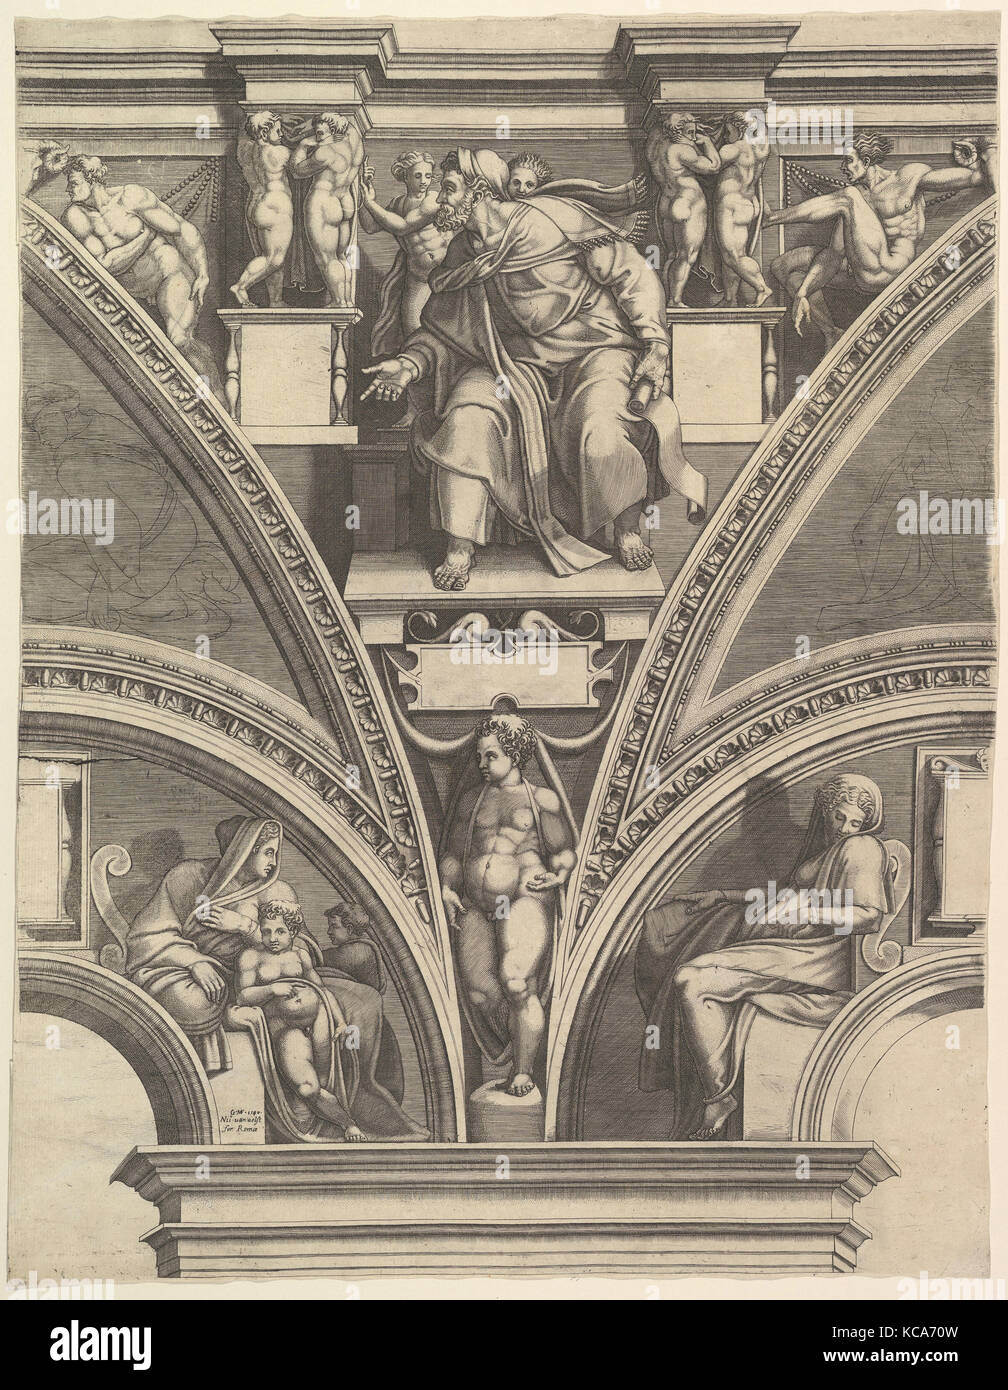 The Prophet Ezekiel; from the series of Prophets and Sibyls in the Sistine Chapel, Giorgio Ghisi, 1570–75 - Stock Image